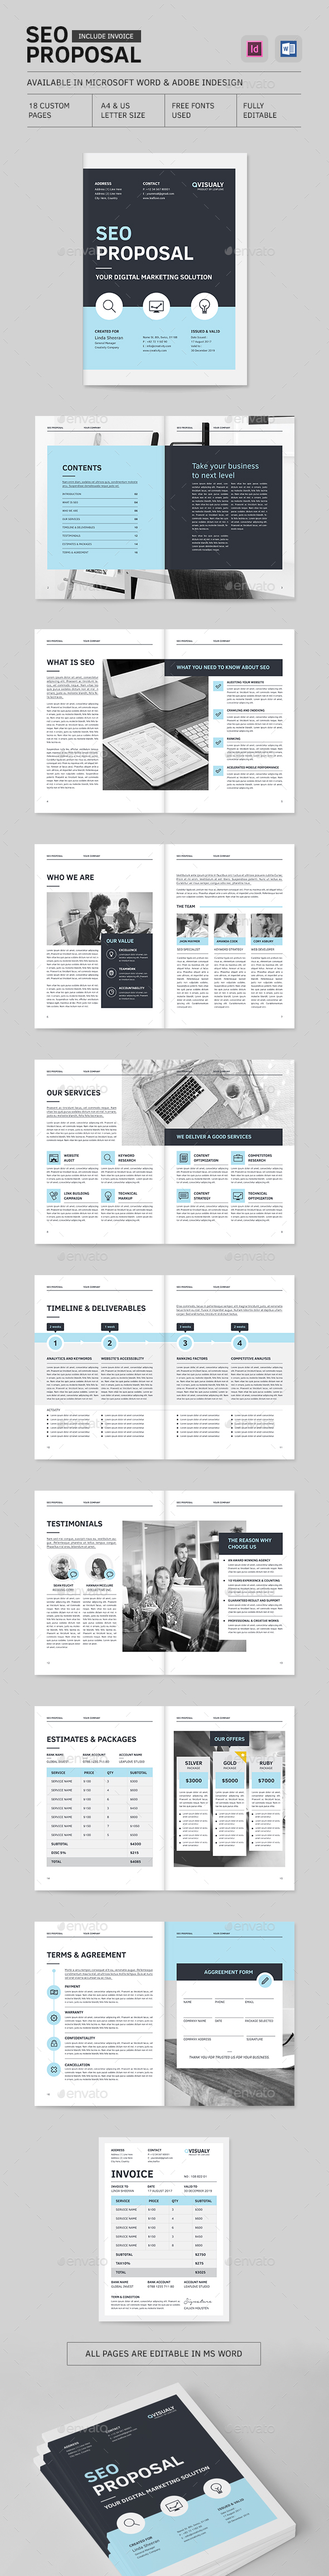 SEO Proposal - Proposals & Invoices Stationery